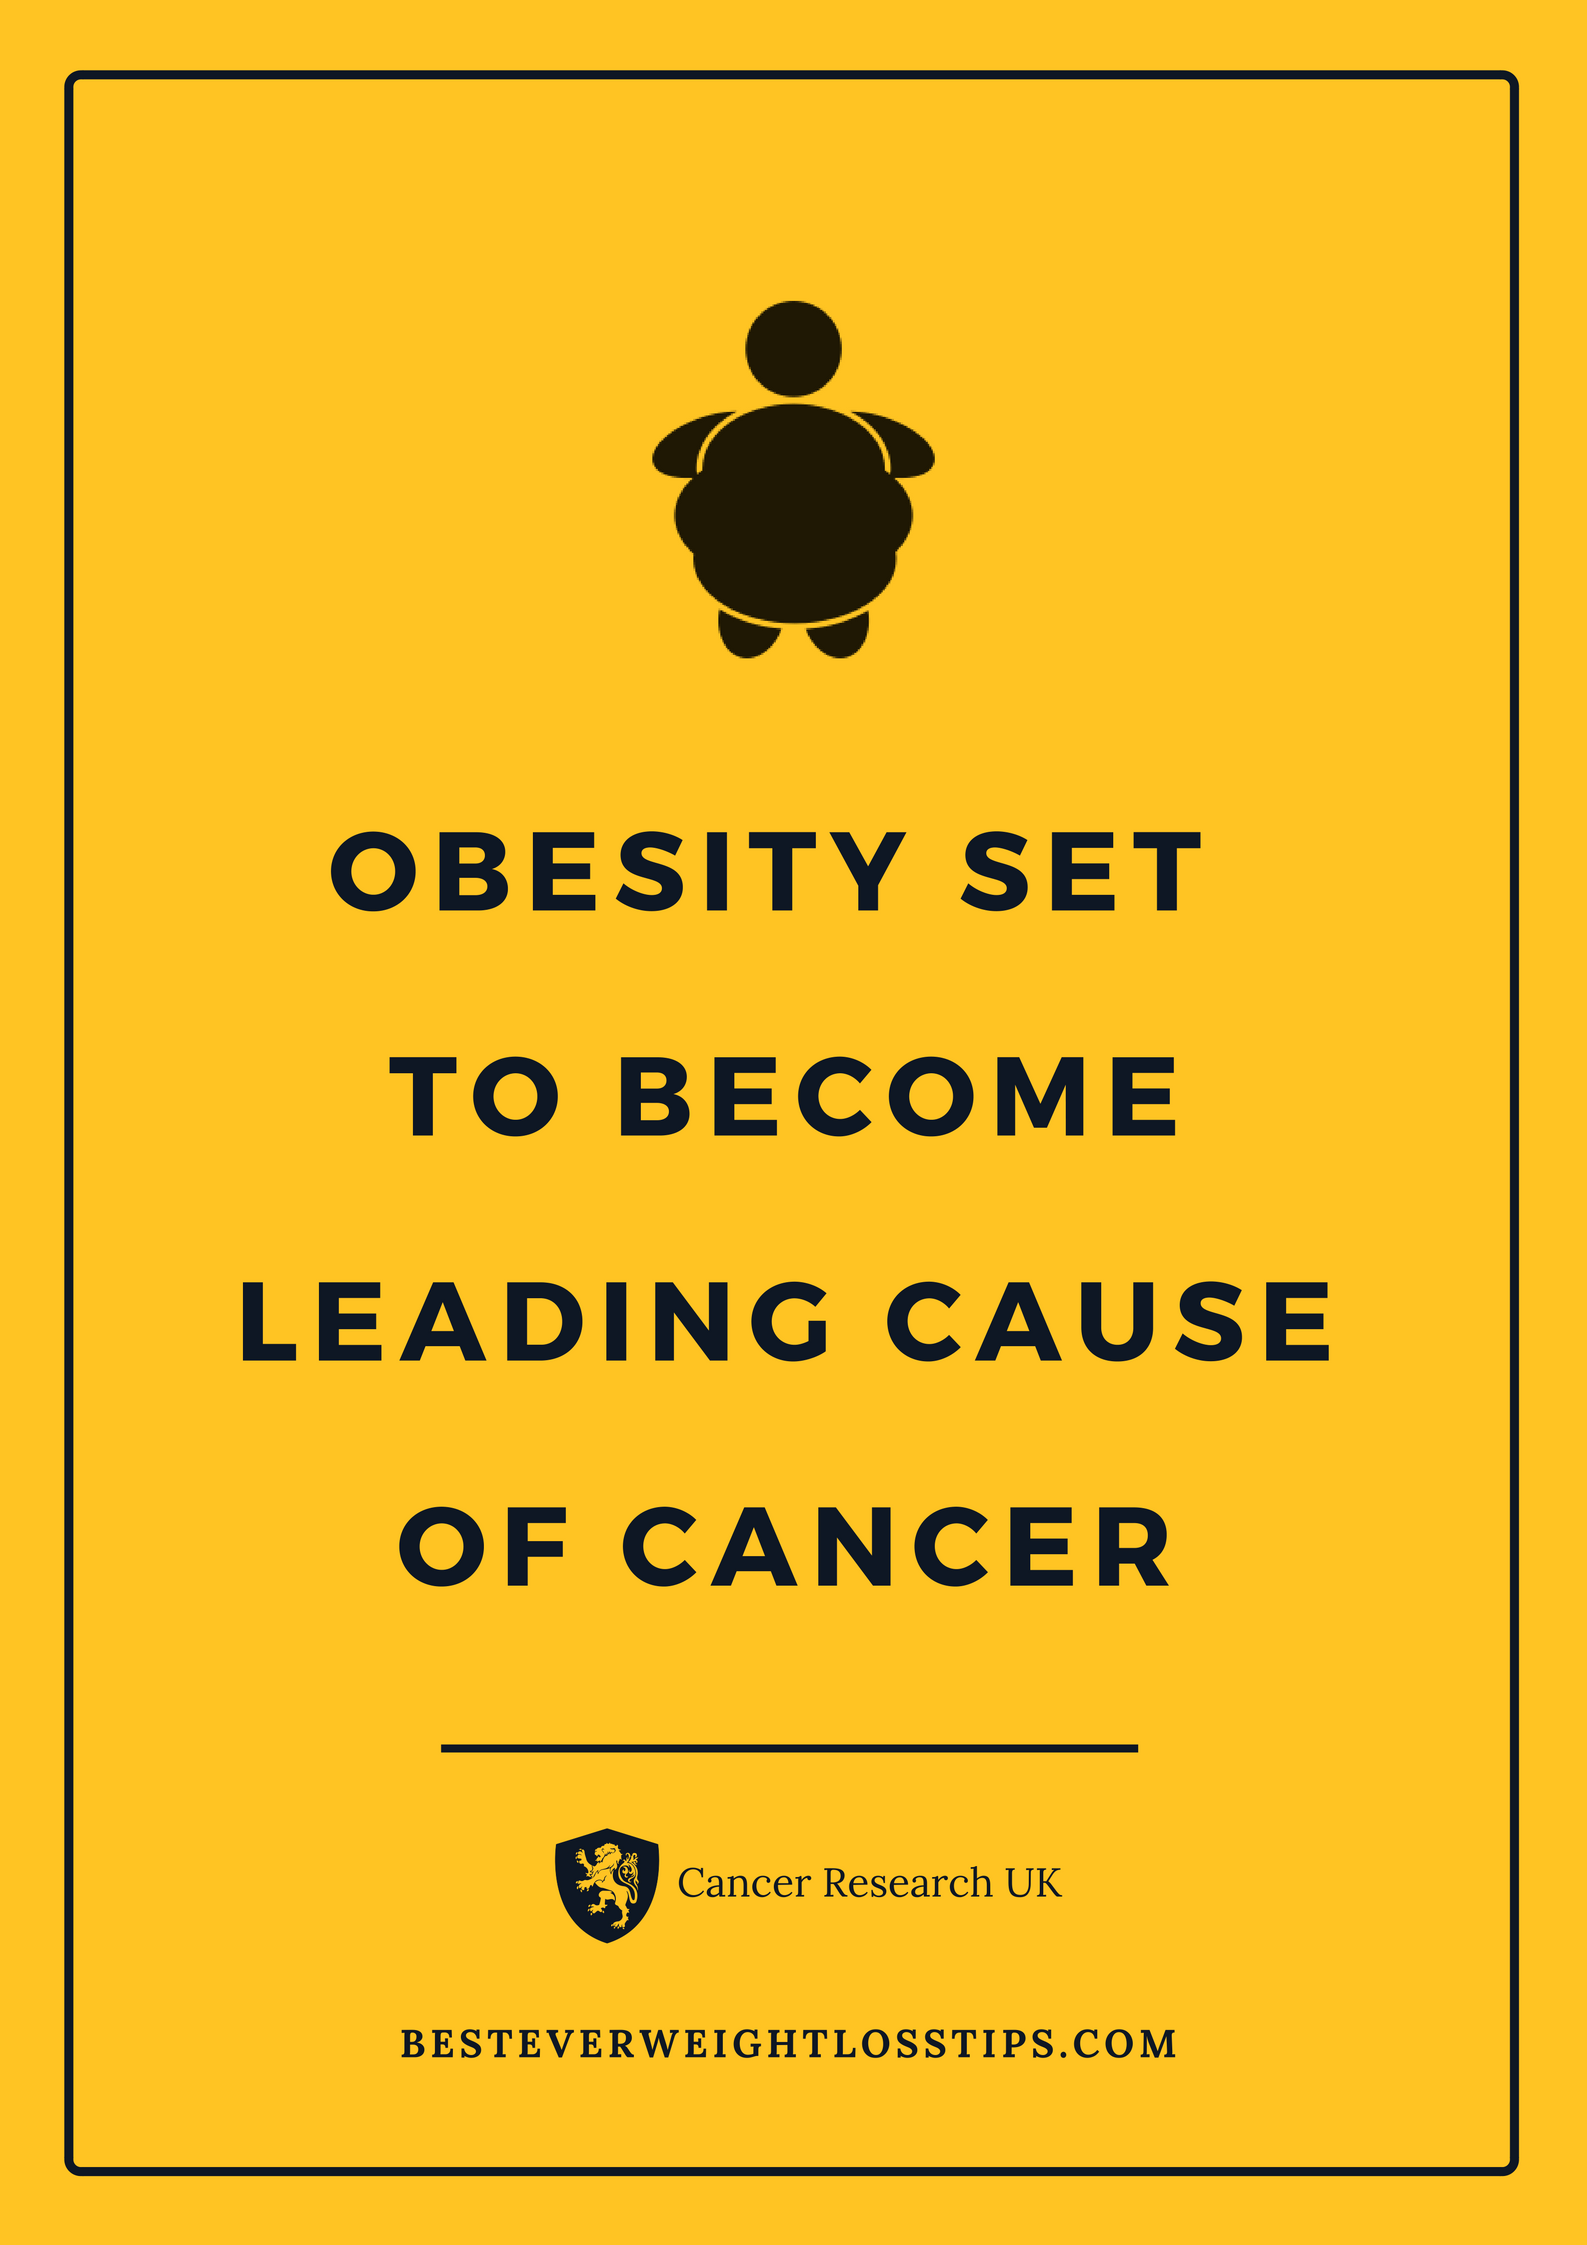 Obesity: Leading Cause of Cancer